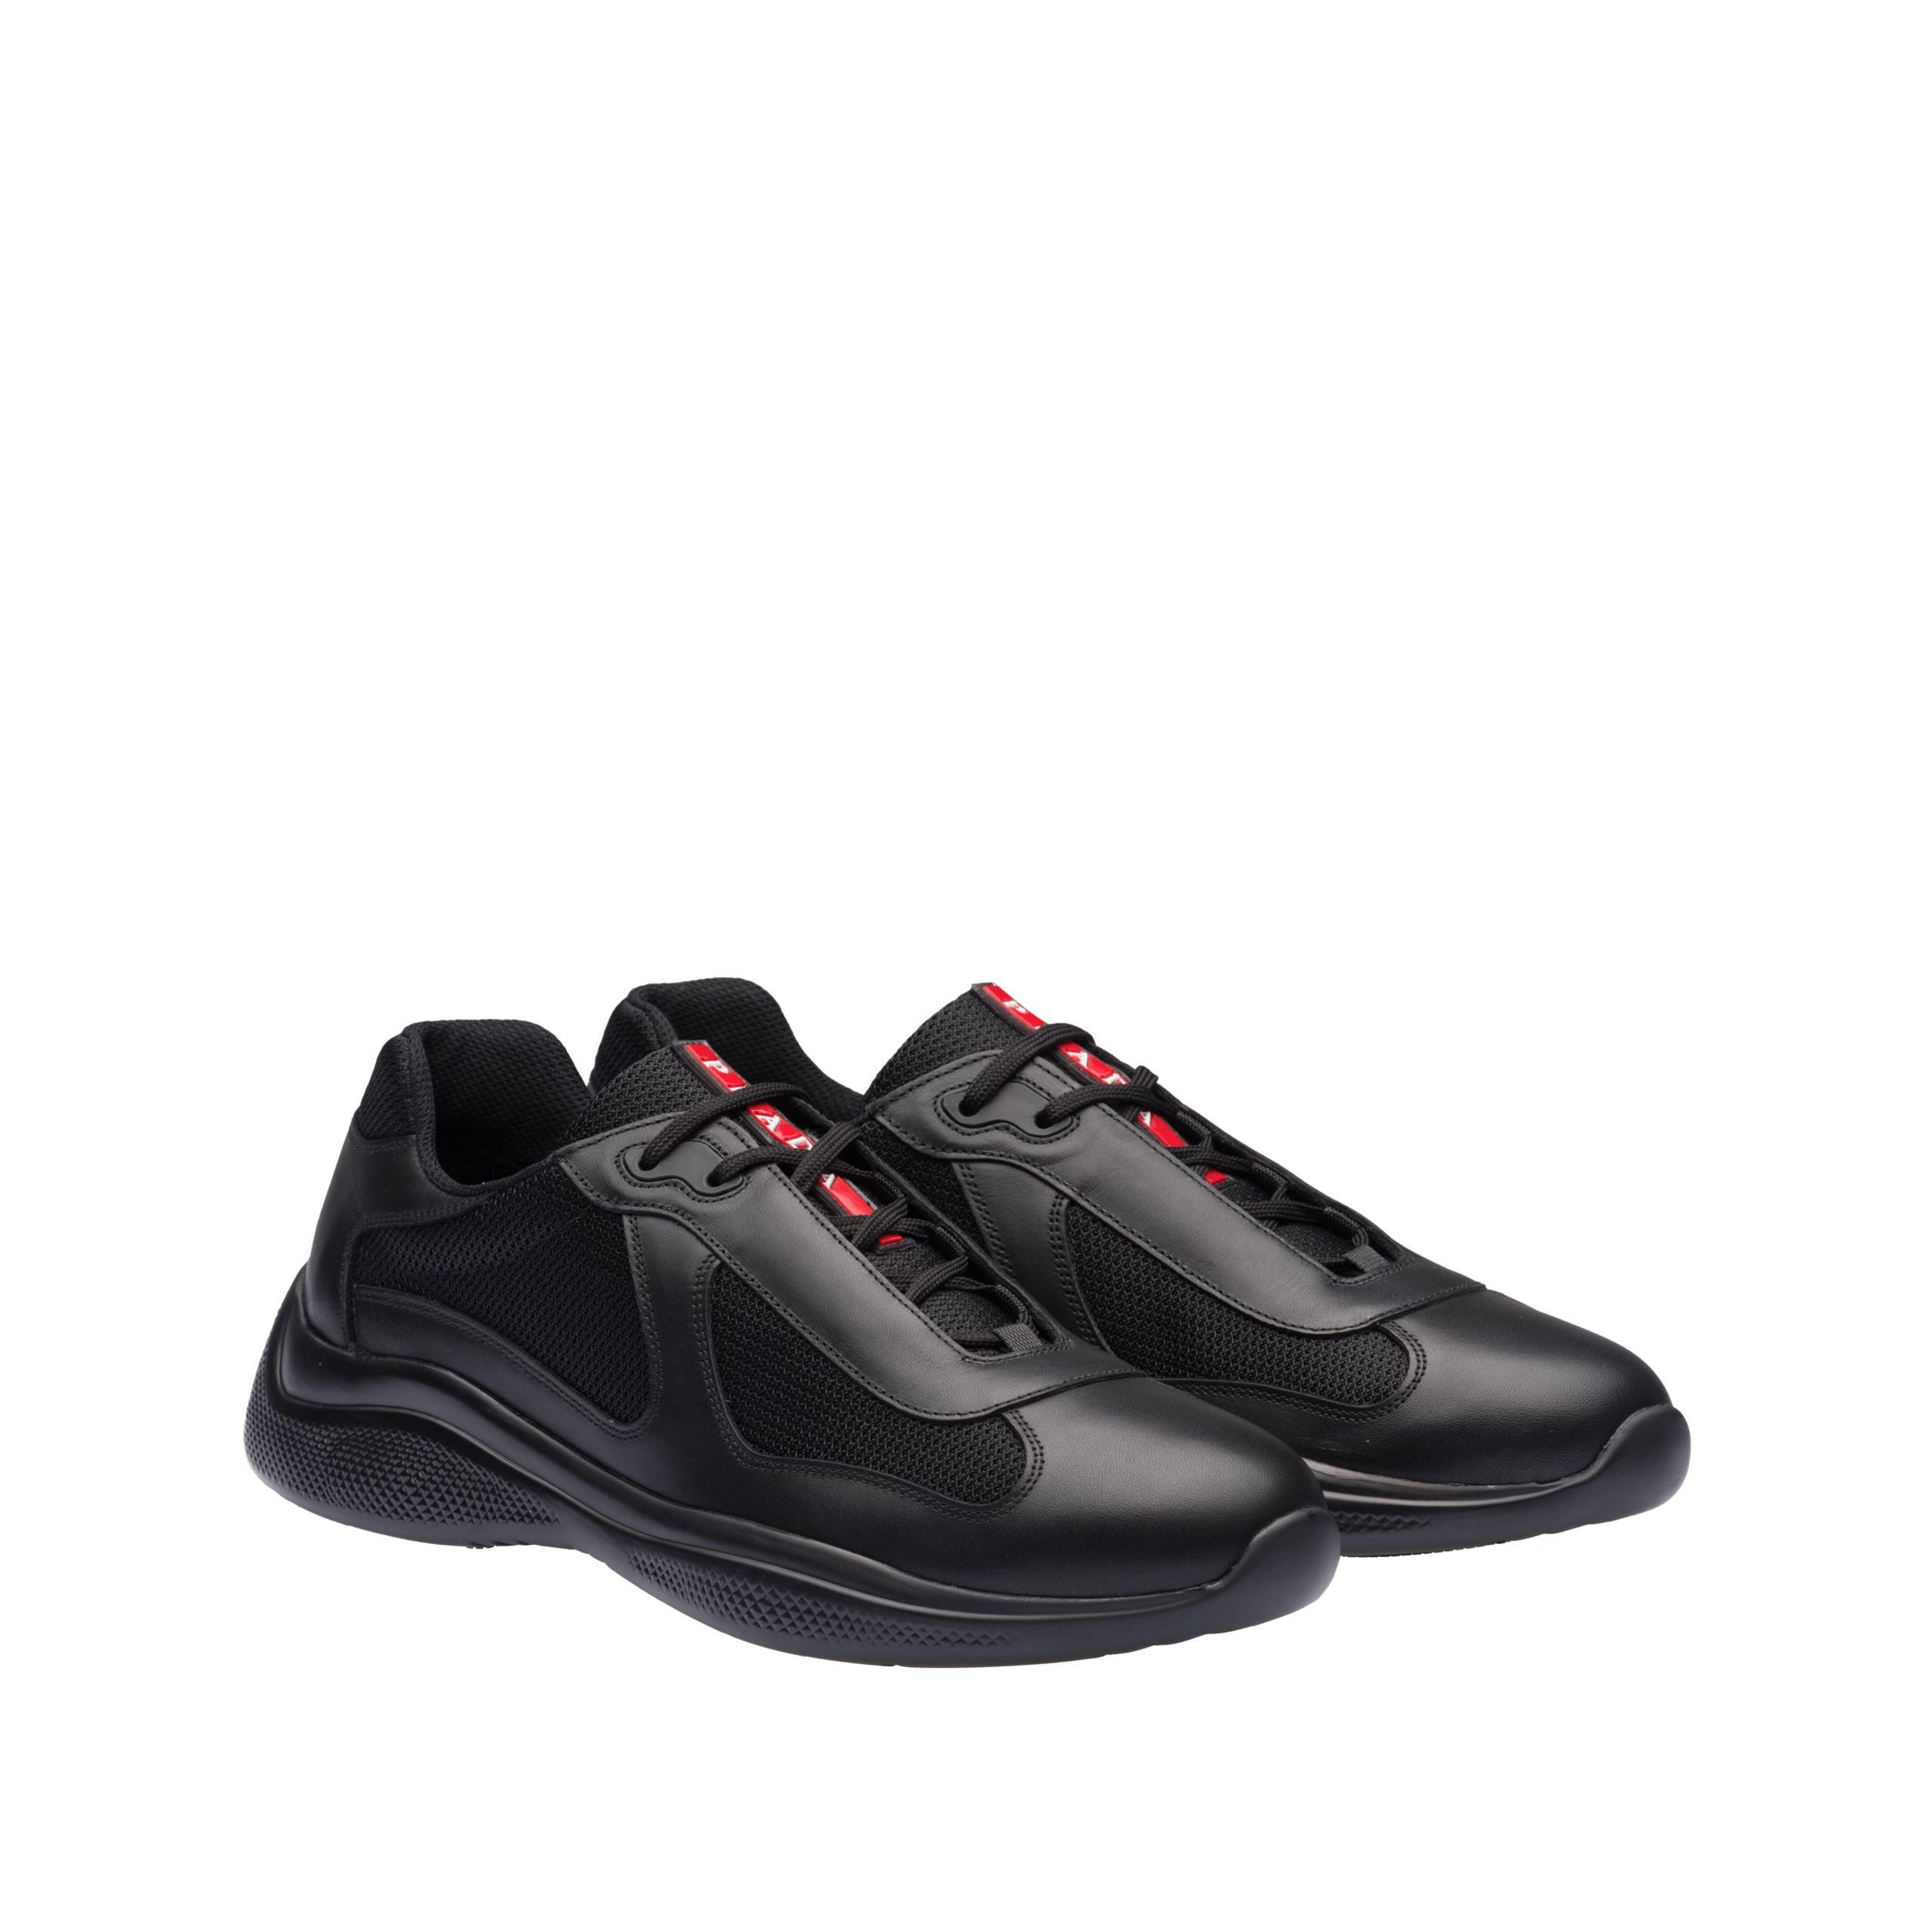 99bb1ff5 Men's Black Leather And Technical Fabric Sneakers